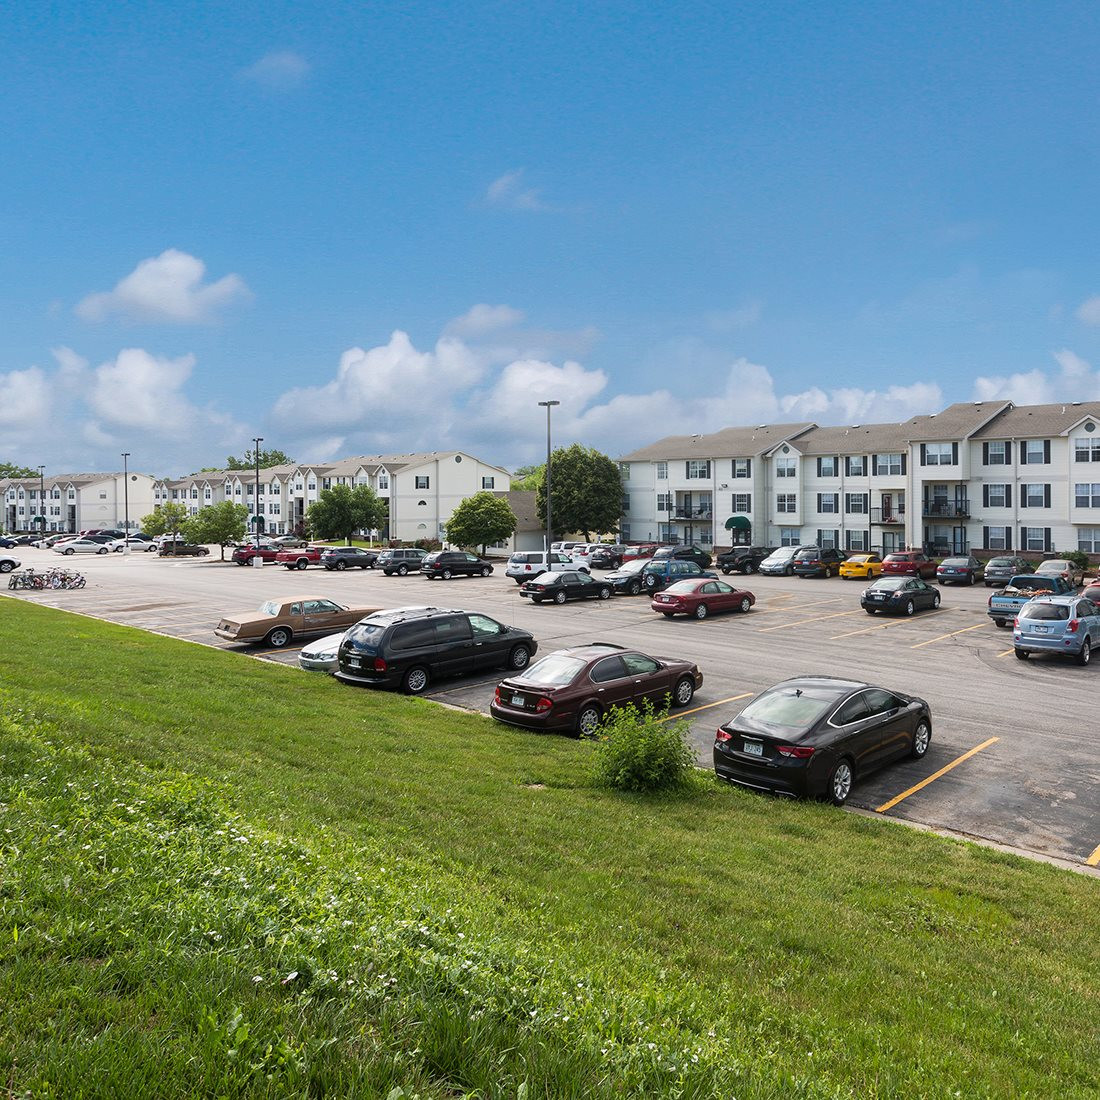 Photos And Video Of Bridgeport Apartments In Lincoln, NE